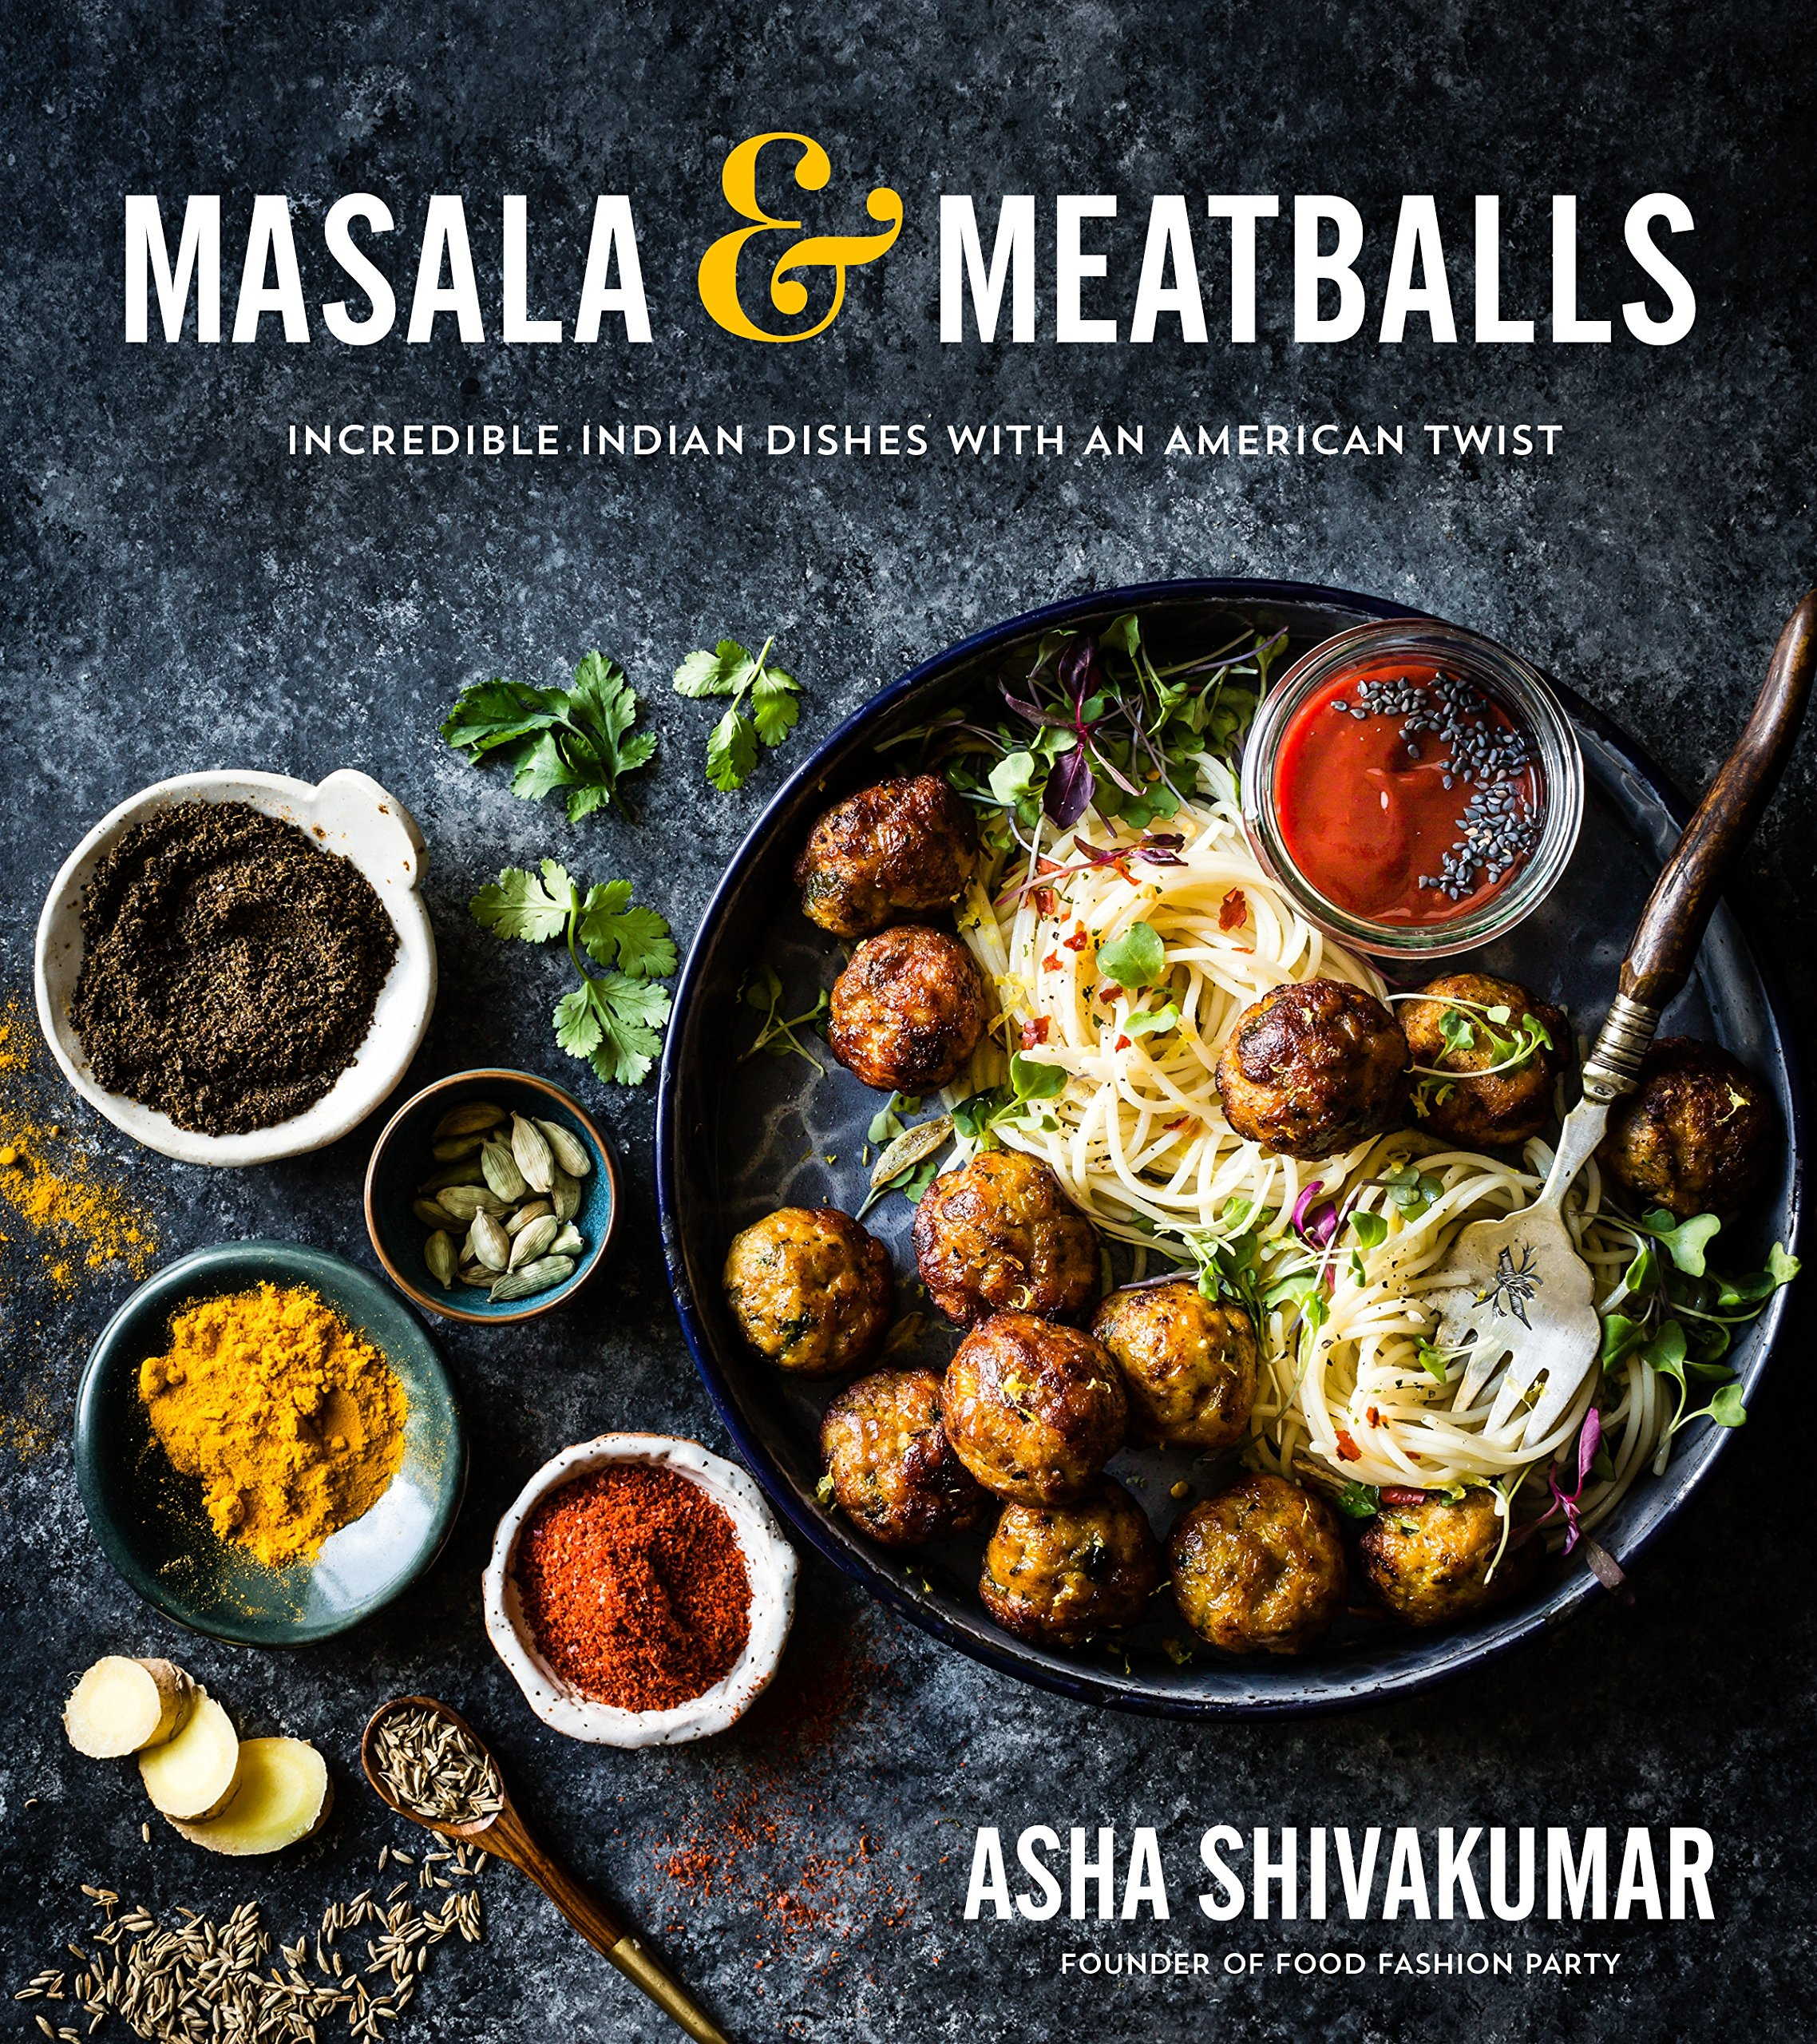 Masala and Meatballs